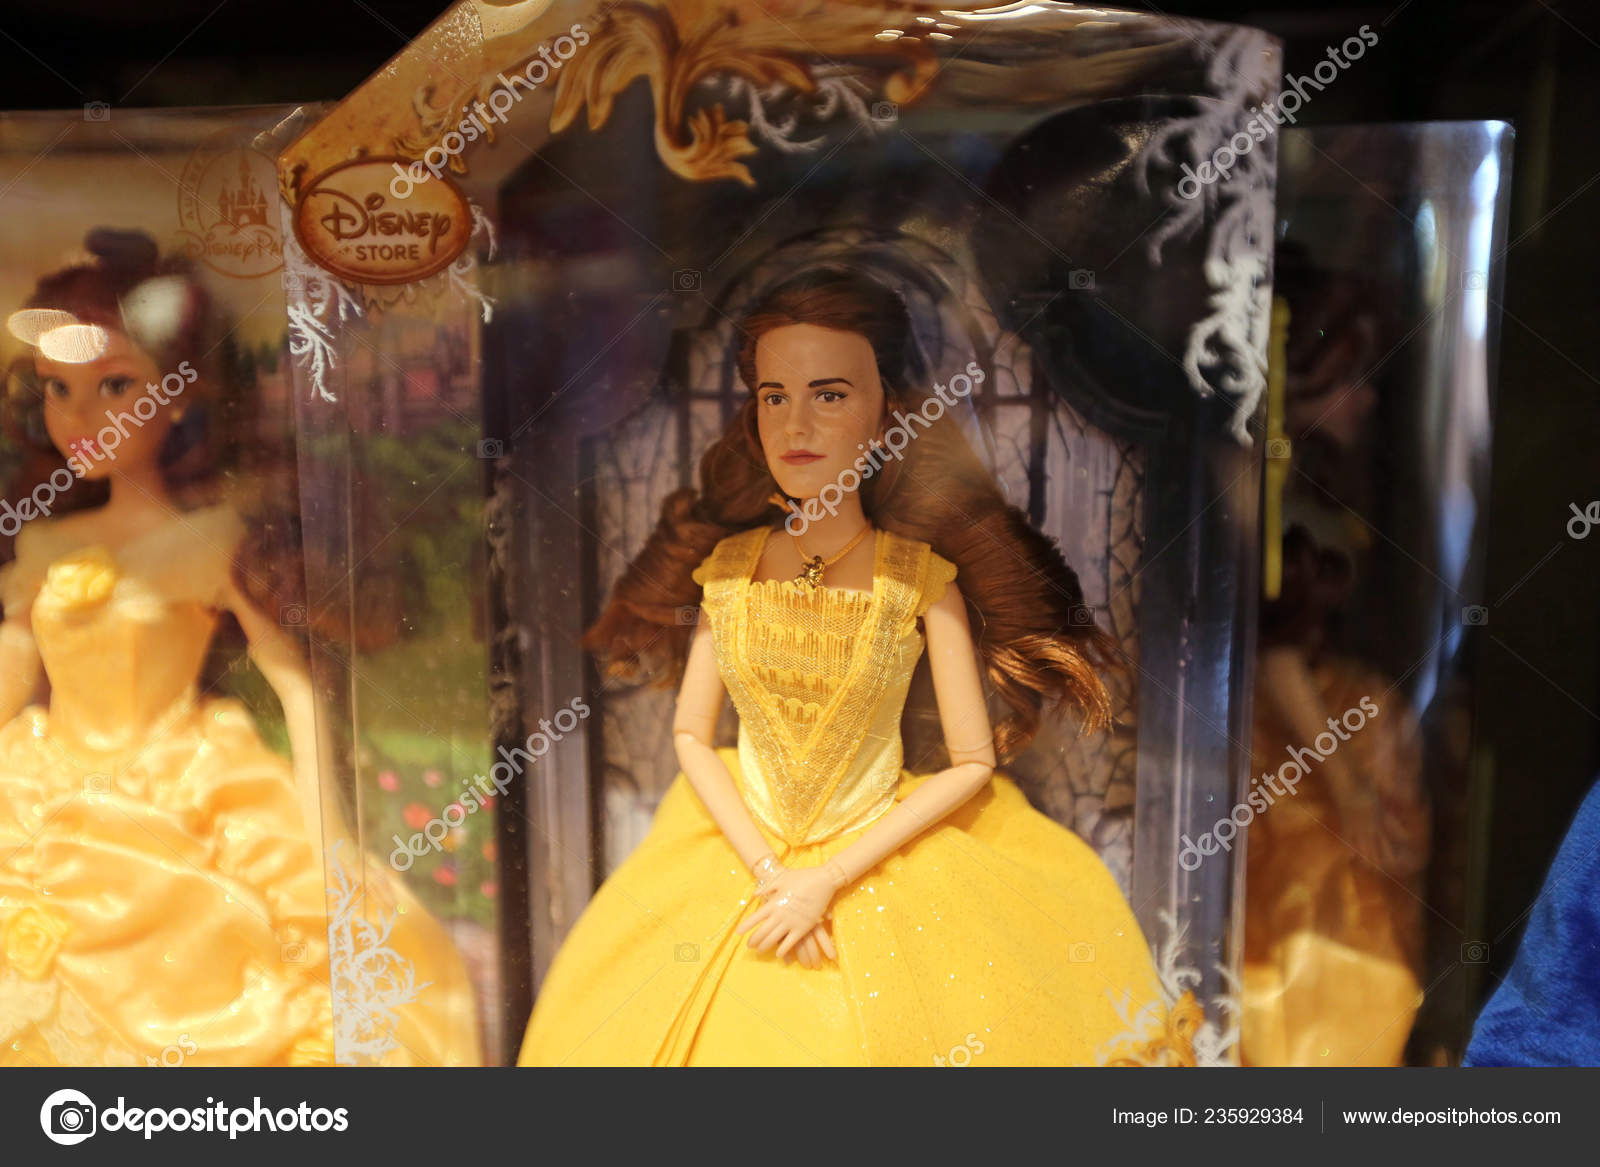 Toy Emma Watson Playing Role Belle Movie Beauty Beast Resembling